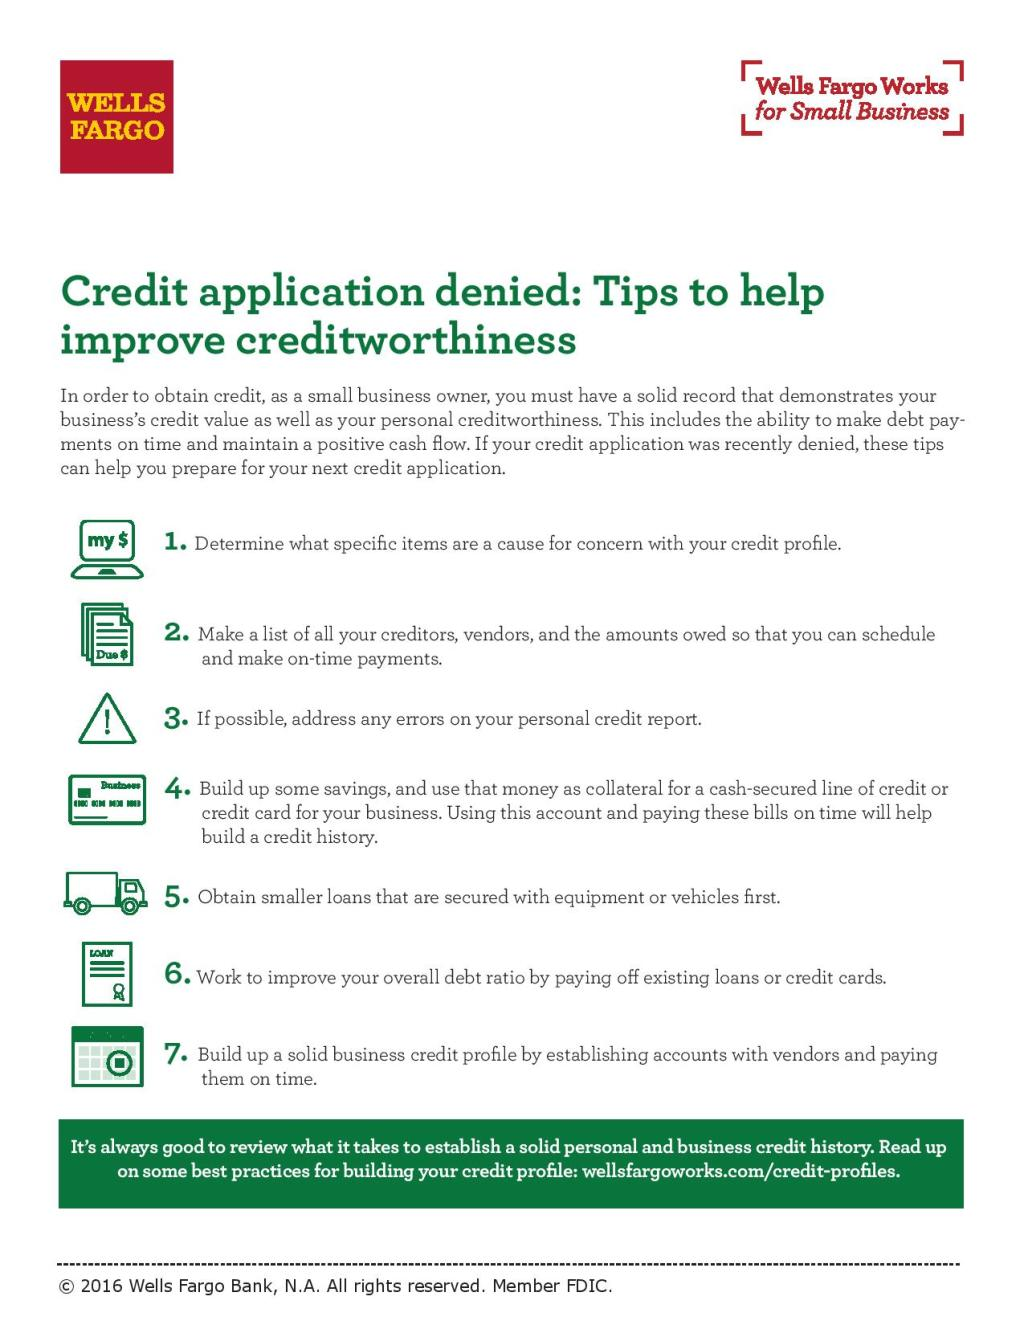 Tips for improving creditworthiness wells fargo credit application denied tips to help improve creditworthiness reheart Gallery